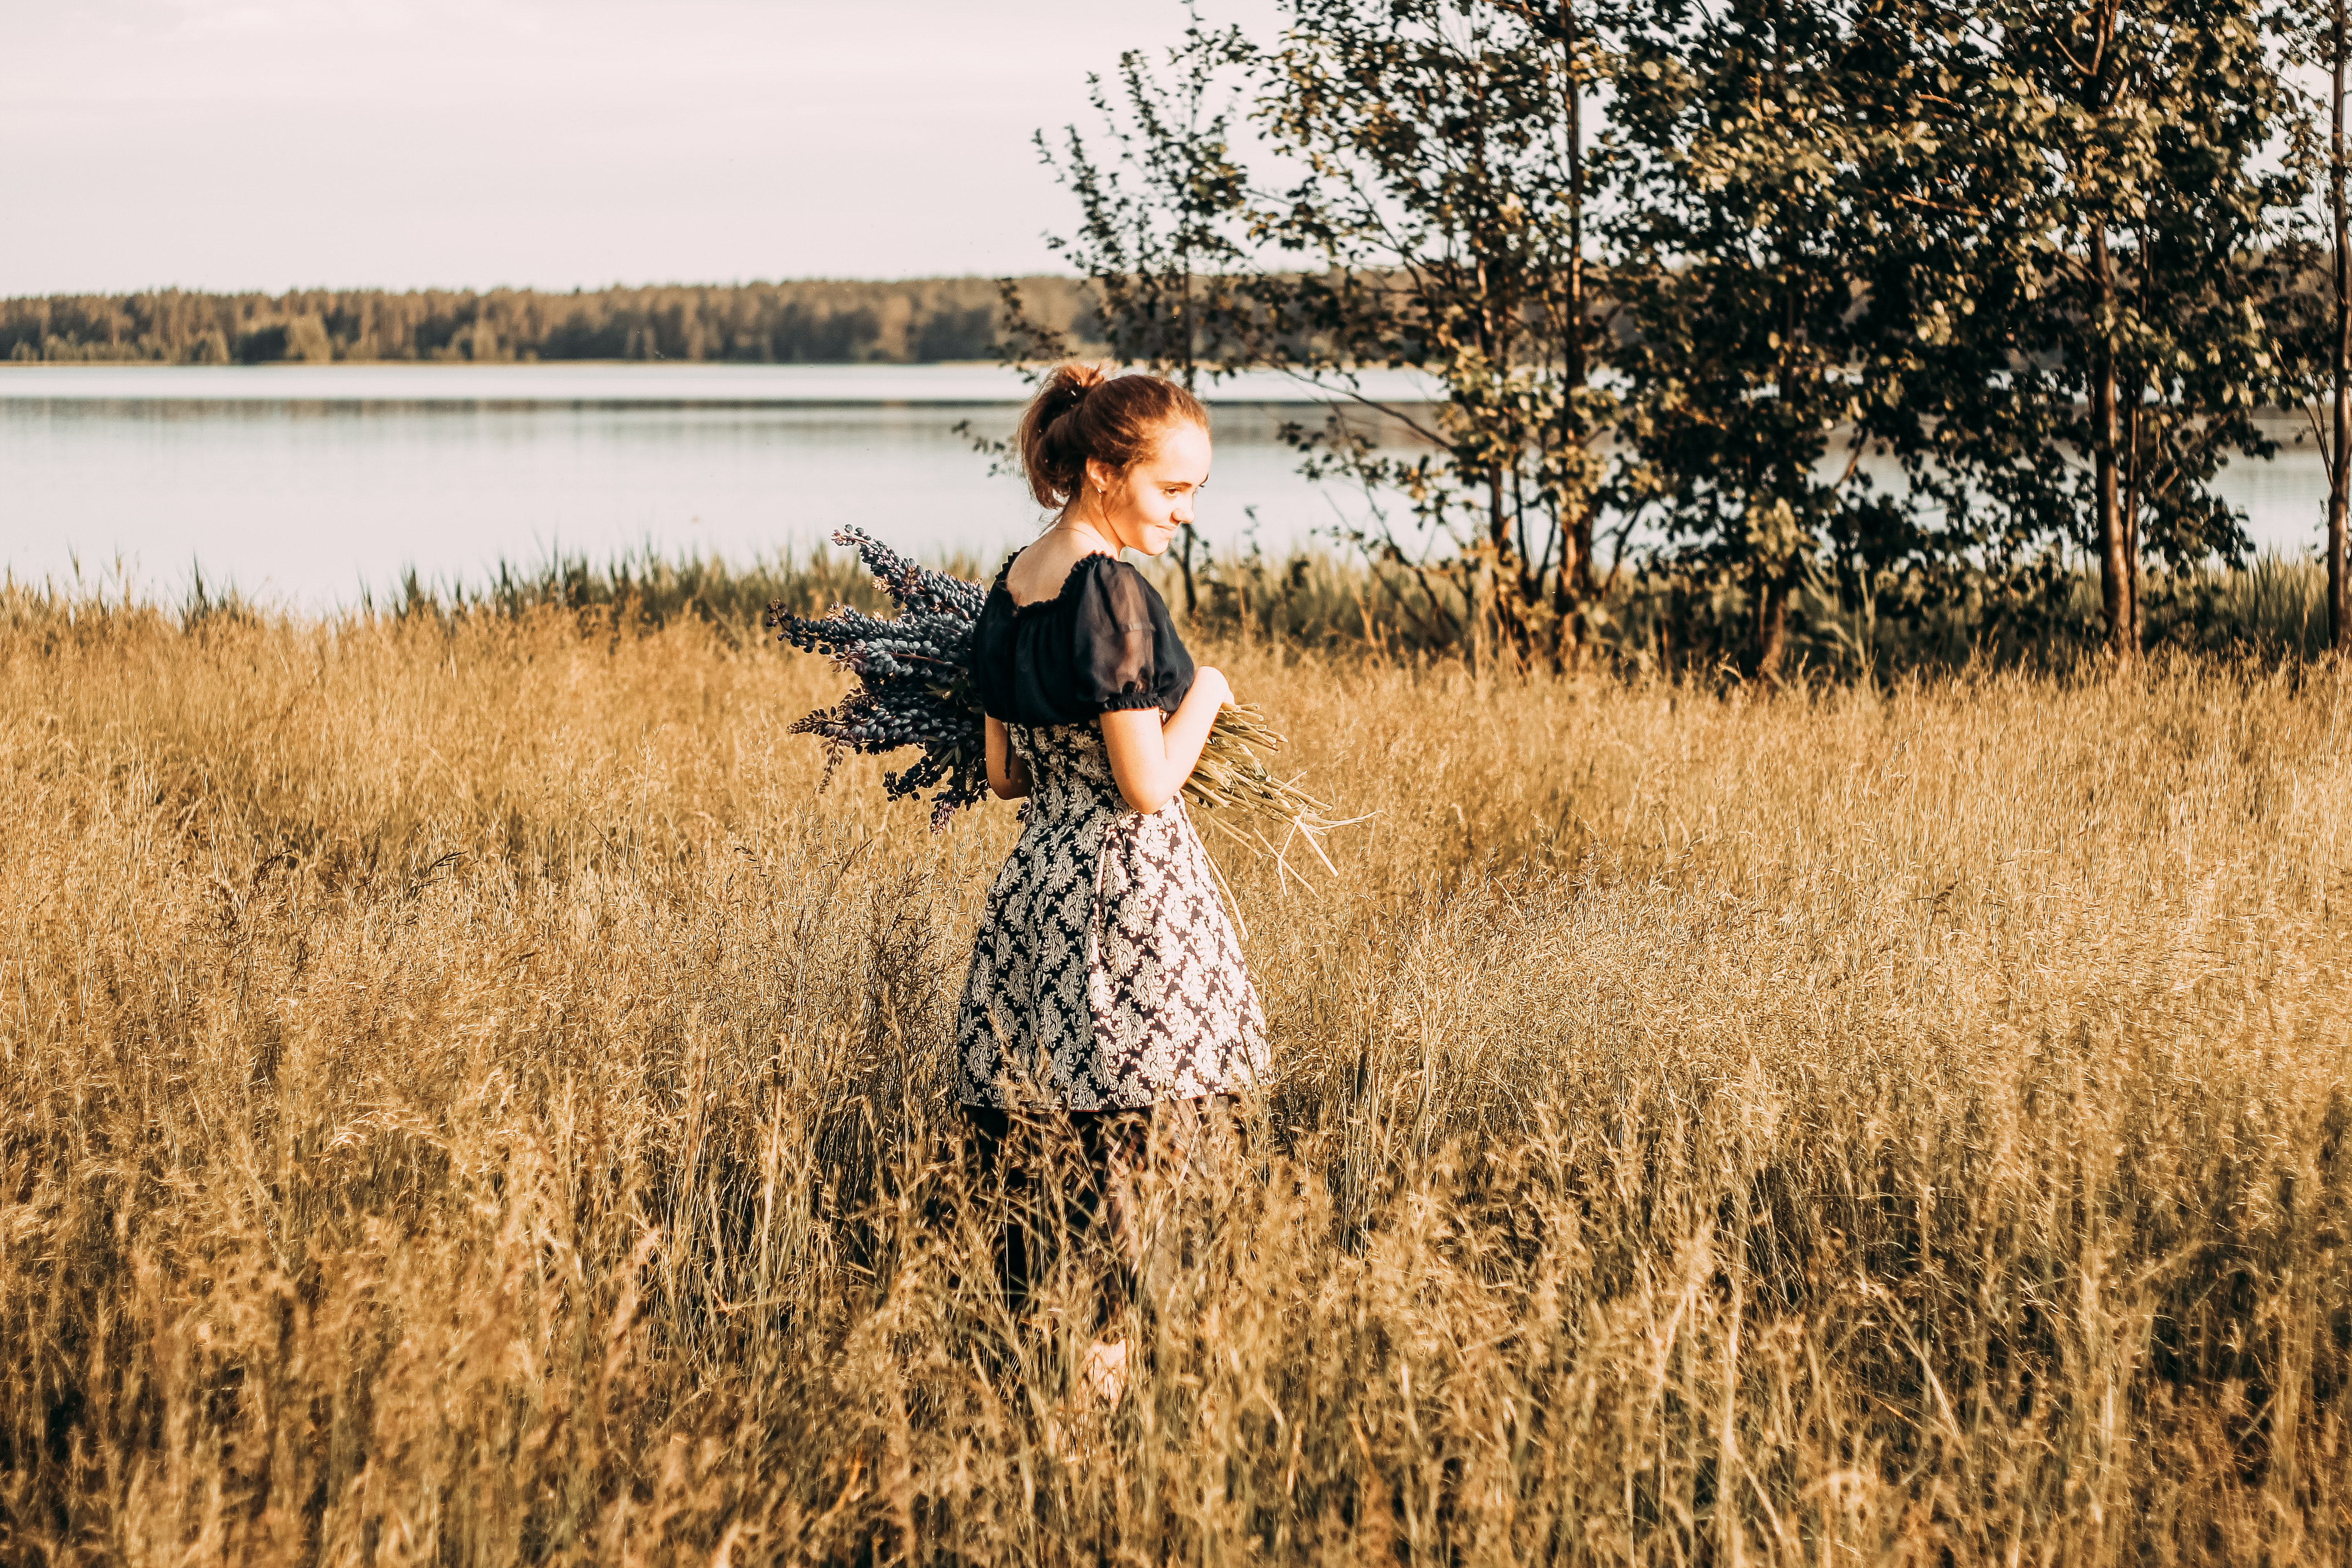 Woman Wears Black and Grey Dress Stands in Field, Beautiful, Leisure, Woman, Water, HQ Photo